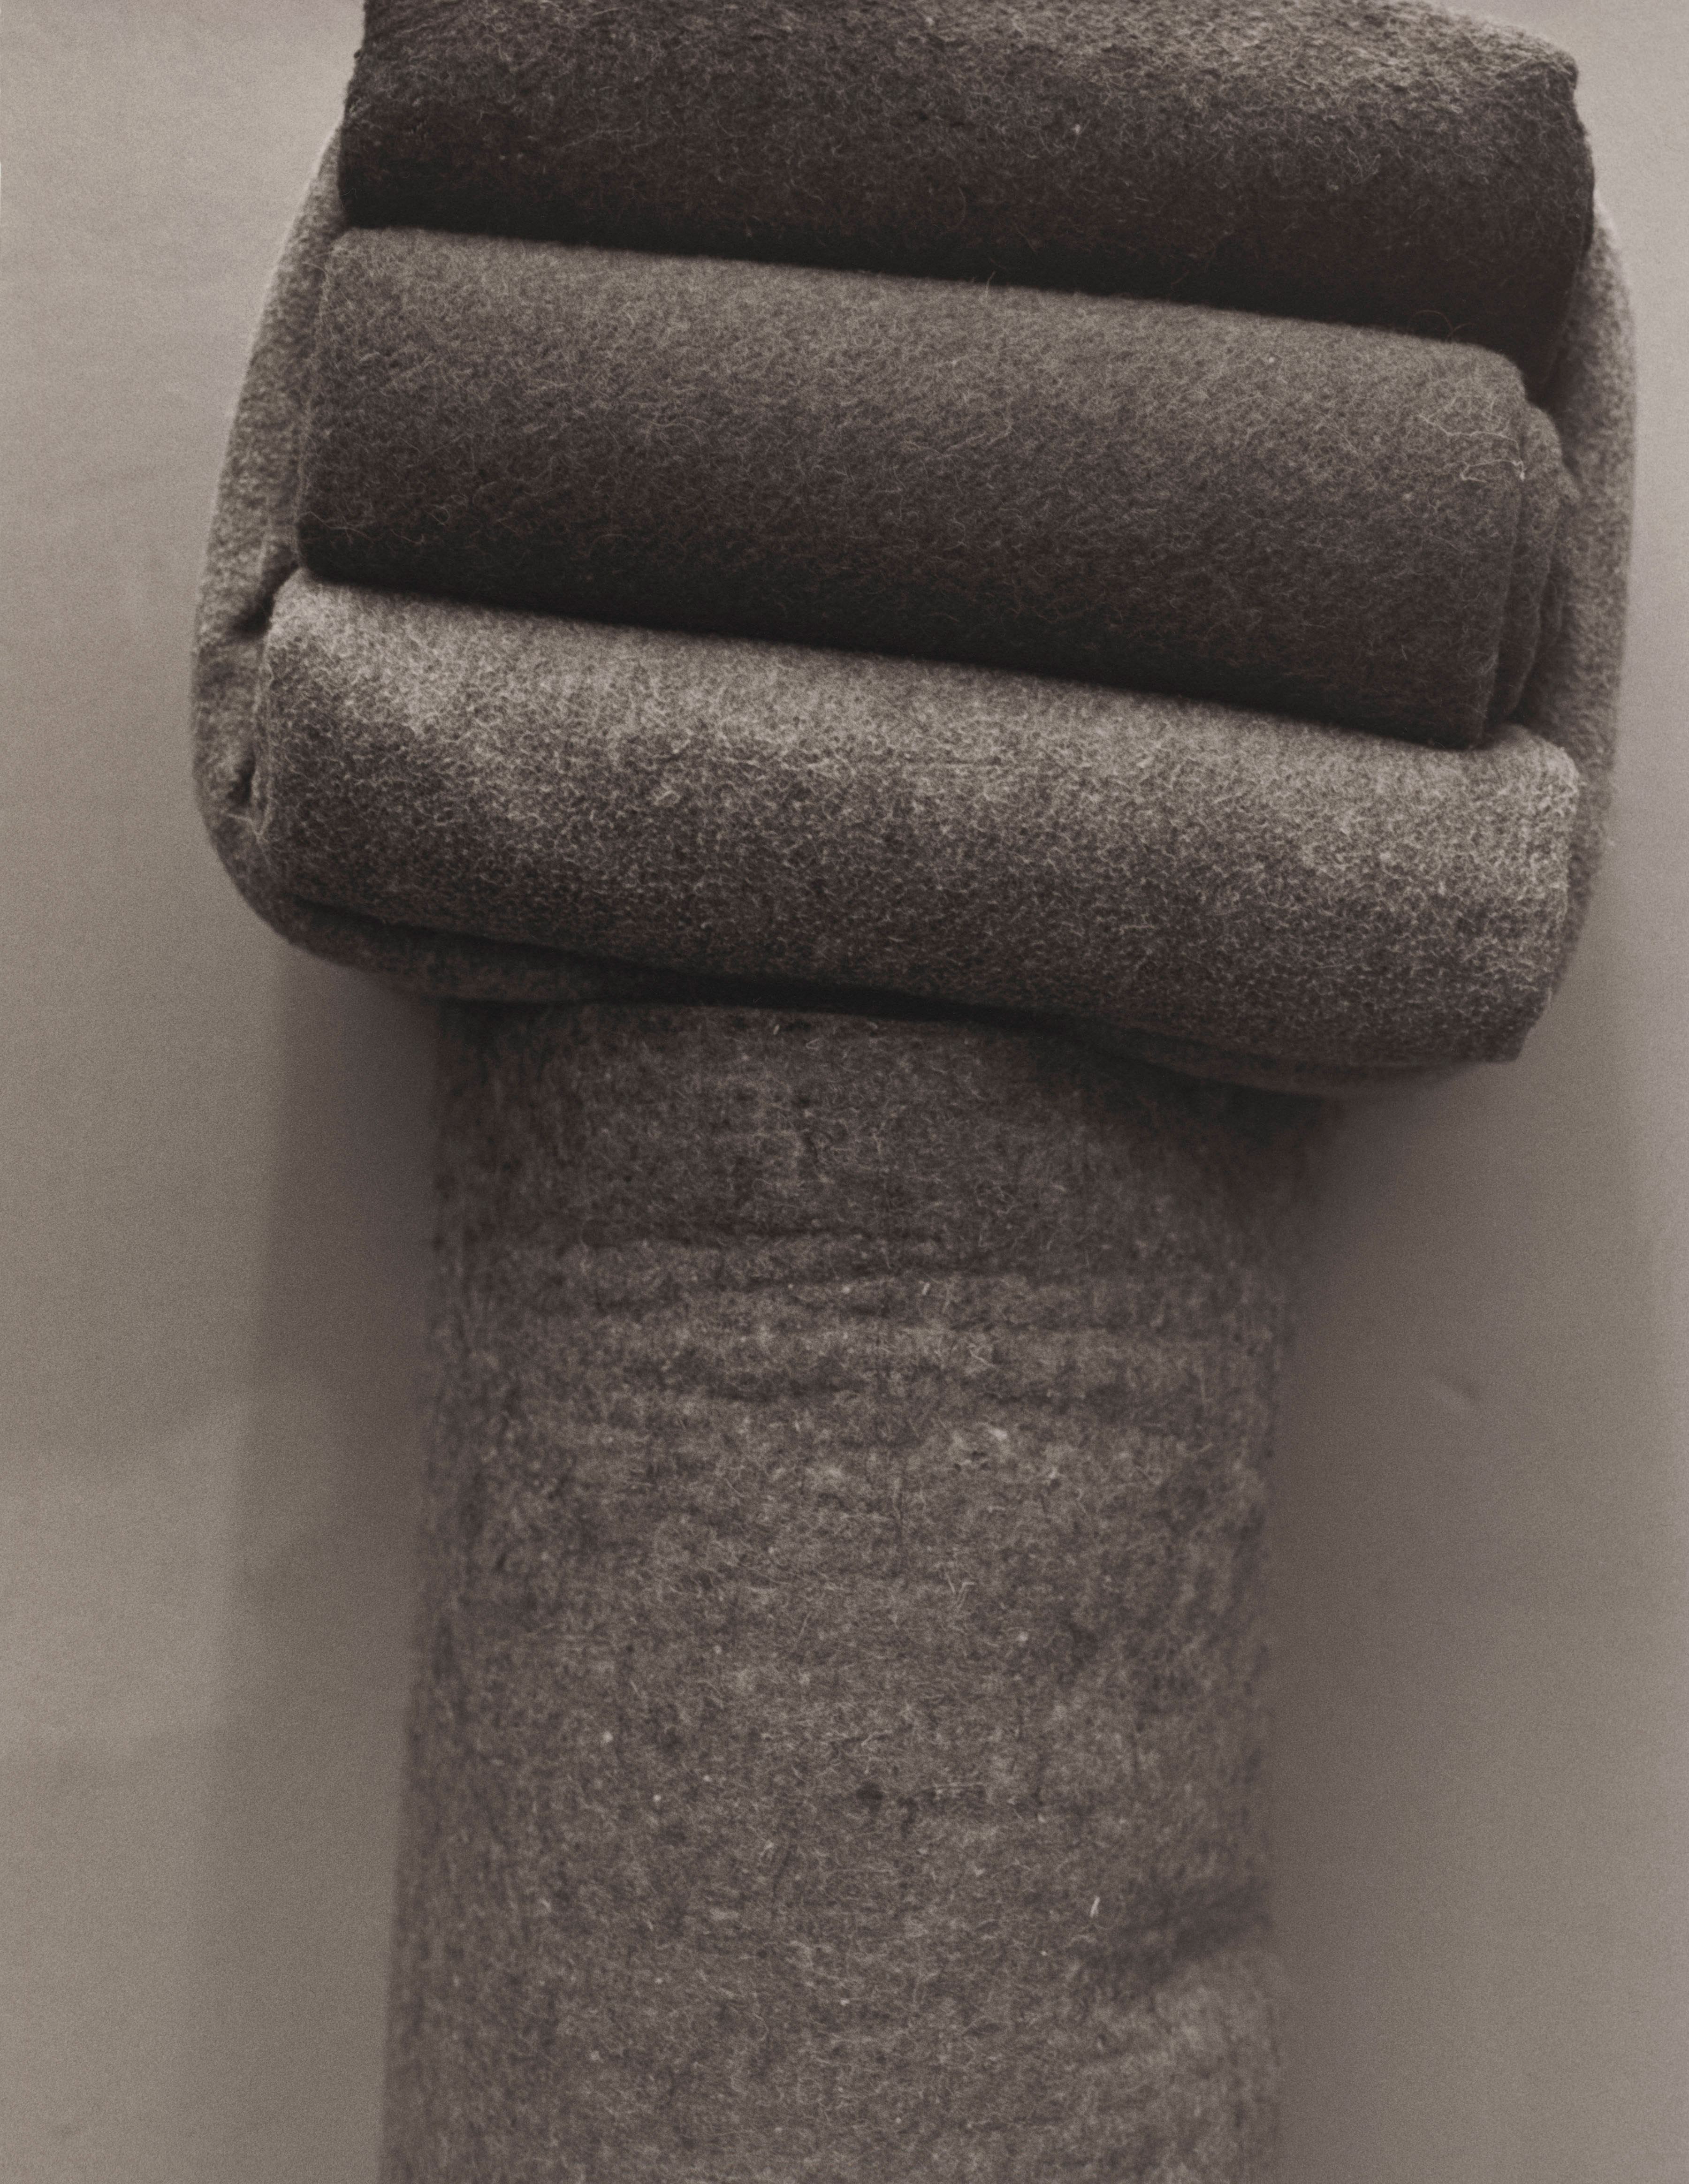 Mandela's blankets, which had to be folded neatly every day.                                                                                             1992